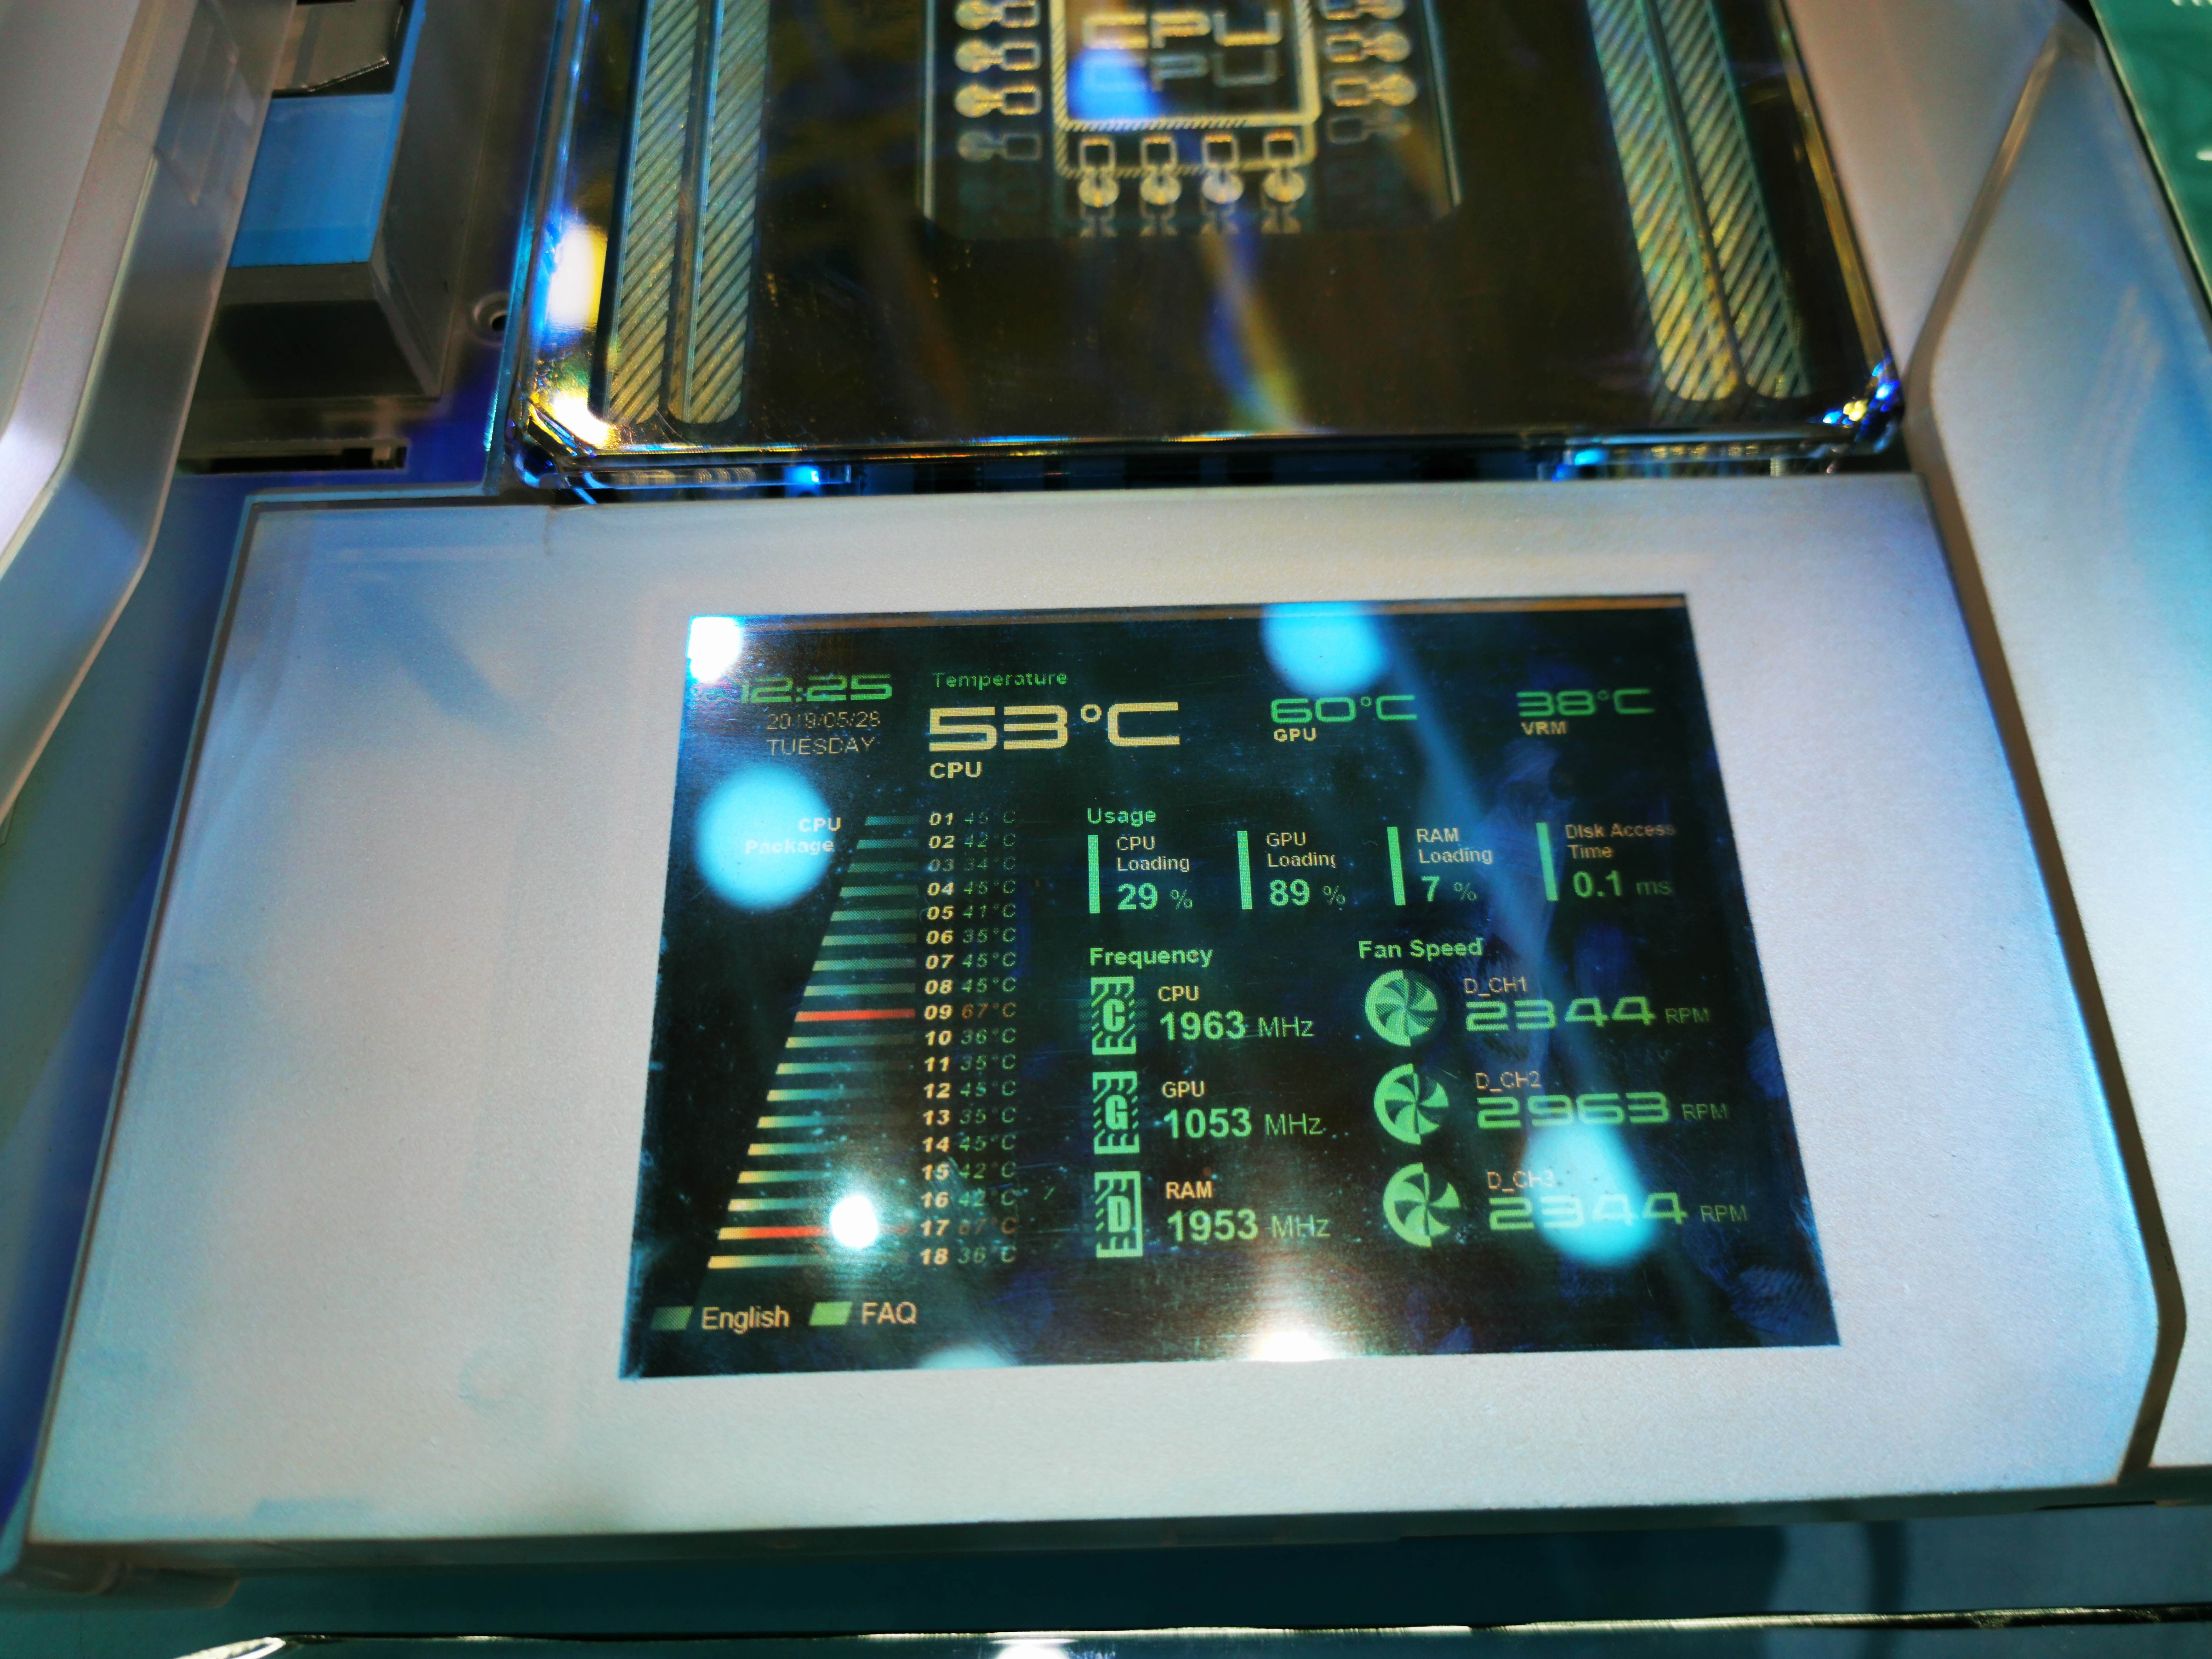 ASUS Prime Utopia Motherboard Tech Demo, with 7-inch OLED